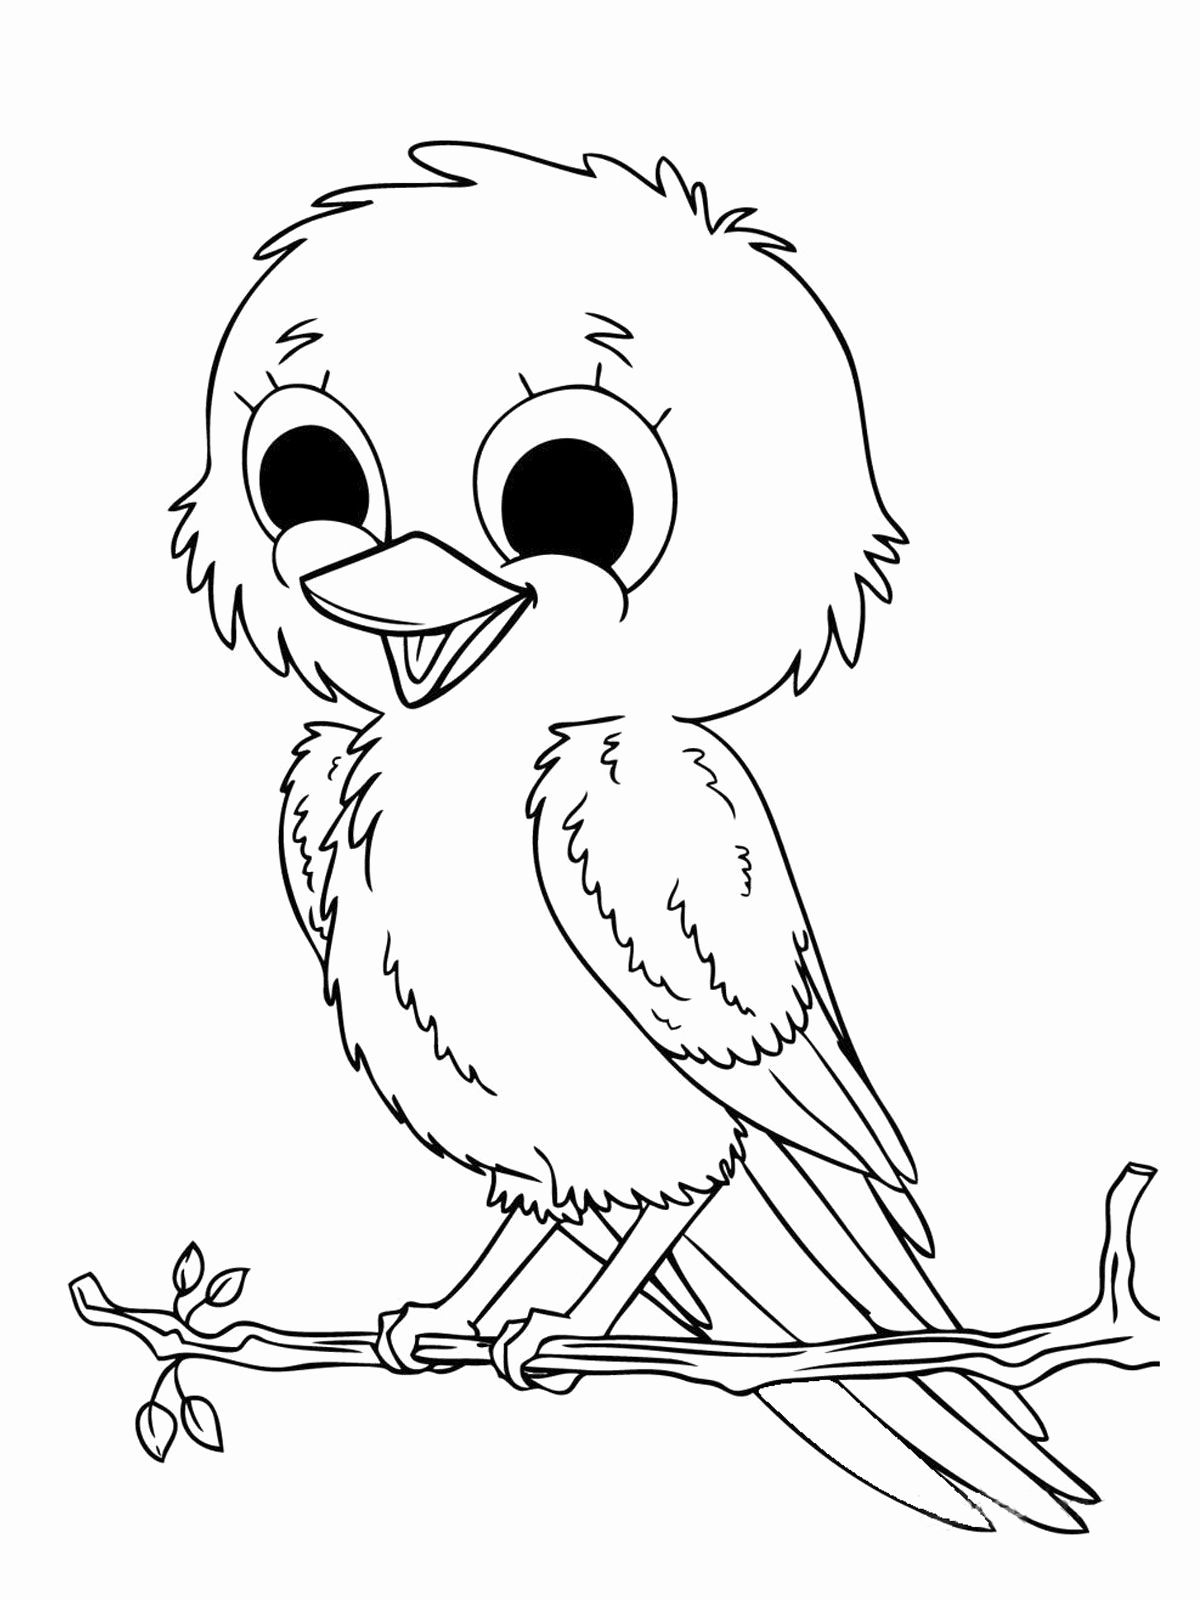 Animal Coloring Pages For Kids Free Animal Coloring Page Printable Drawings Animals Colo Bird Coloring Pages Farm Animal Coloring Pages Animal Coloring Books